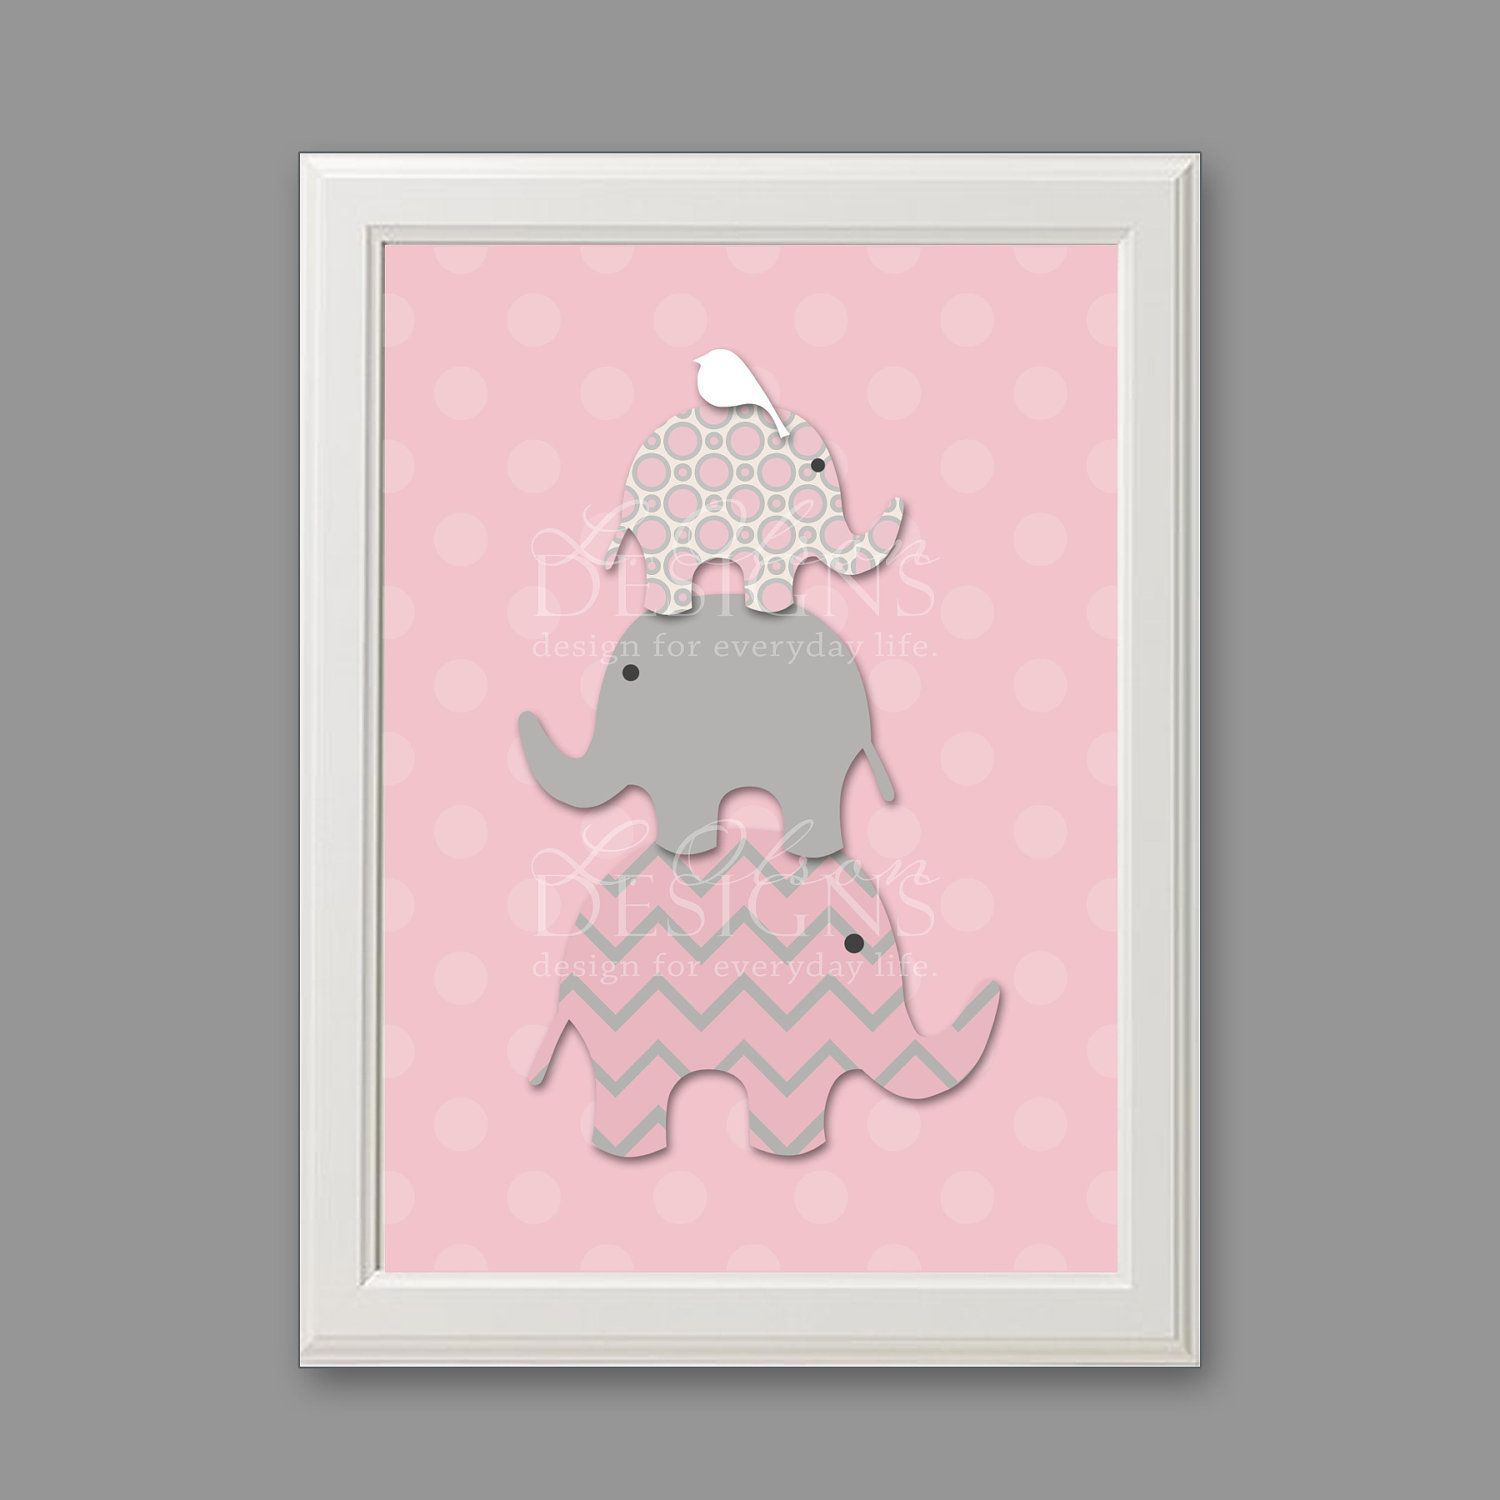 Elephant nursery wall art print mom baby dad by rizzleandrugee - Stacked Elephants Custom Nursery Art 8x10 Digital Print